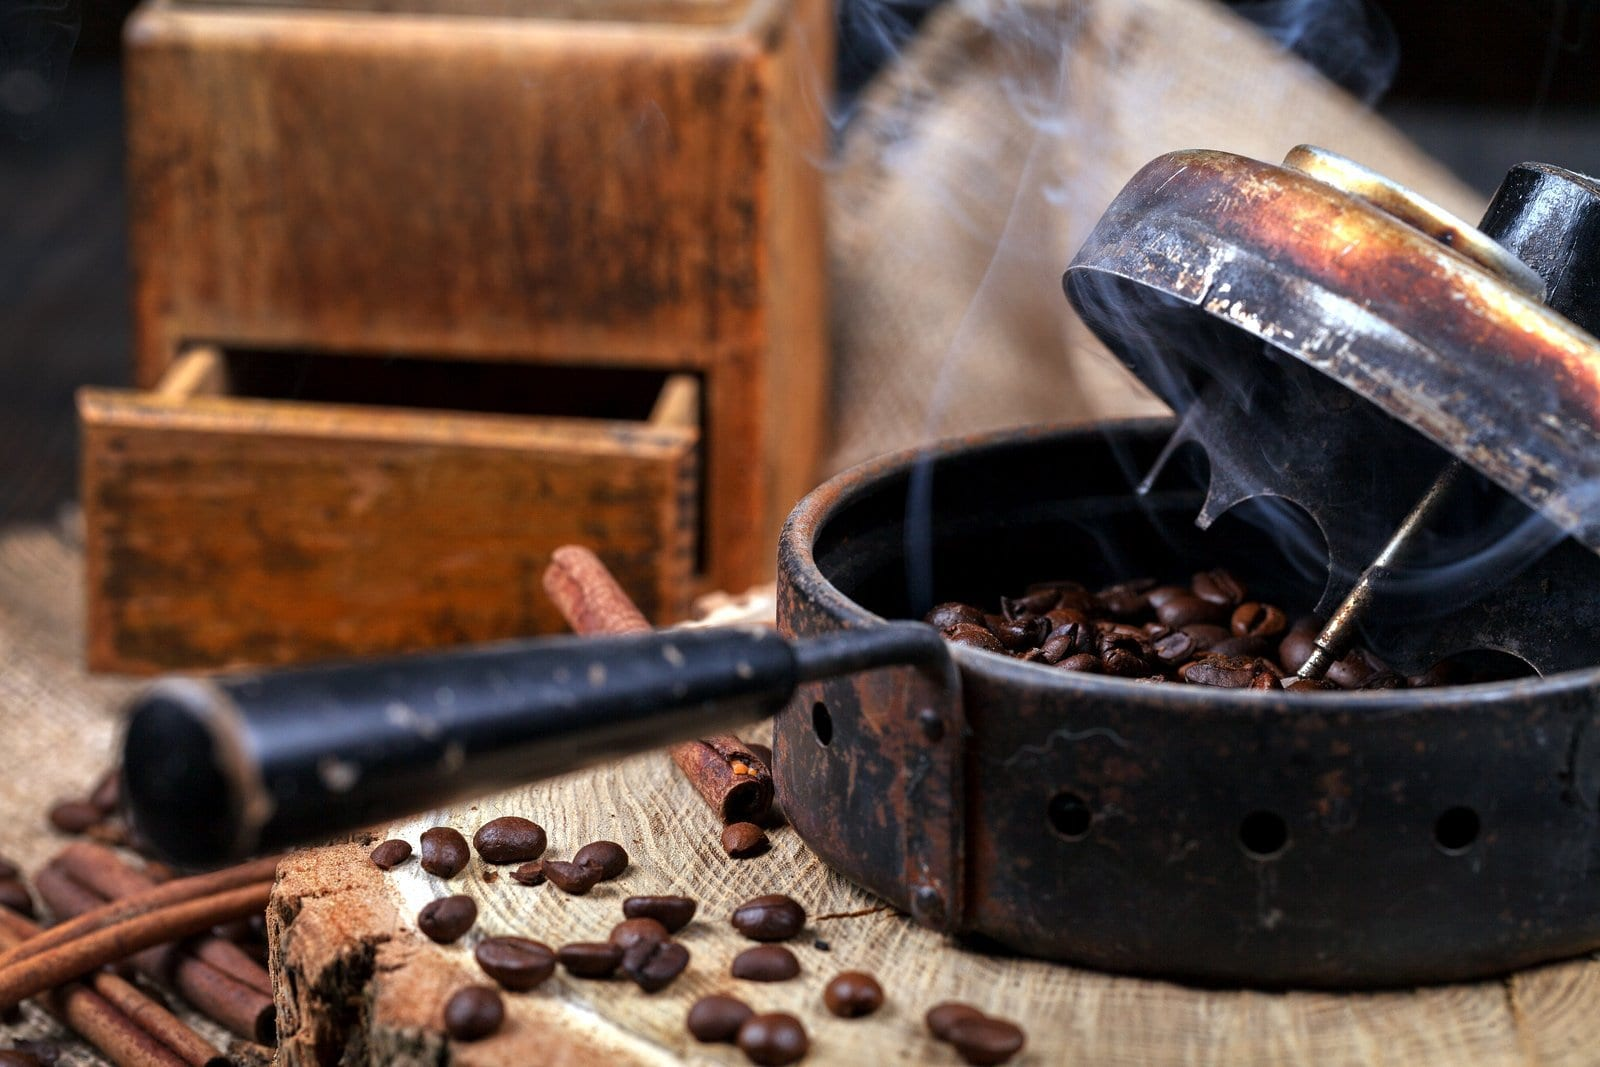 Antique coffee roaster to make coffee the old-fashioned way